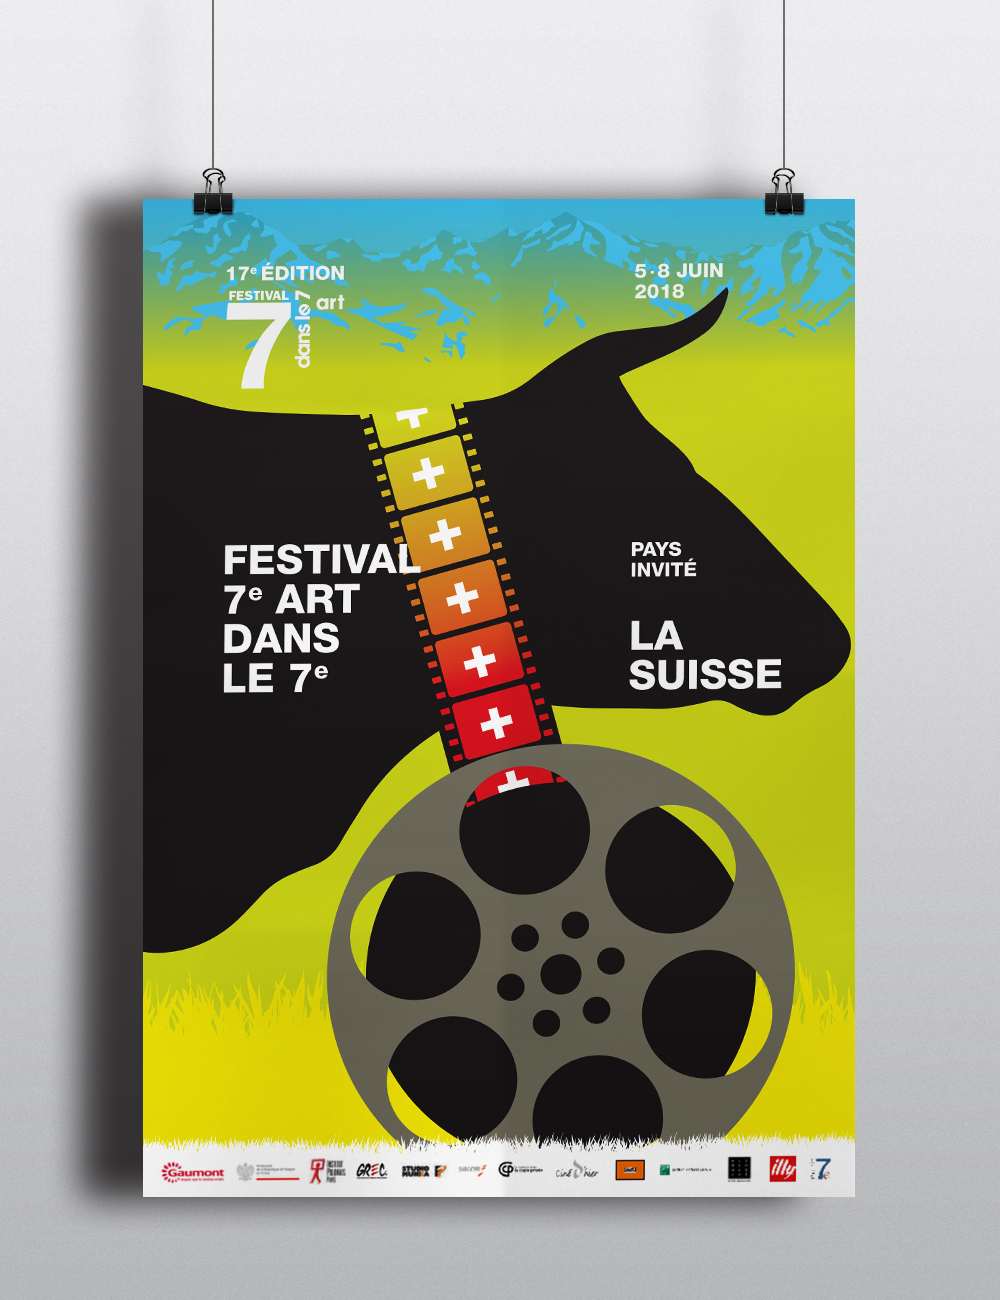 Agence-Si_Jerome-LINIGER_Affiche_1-11